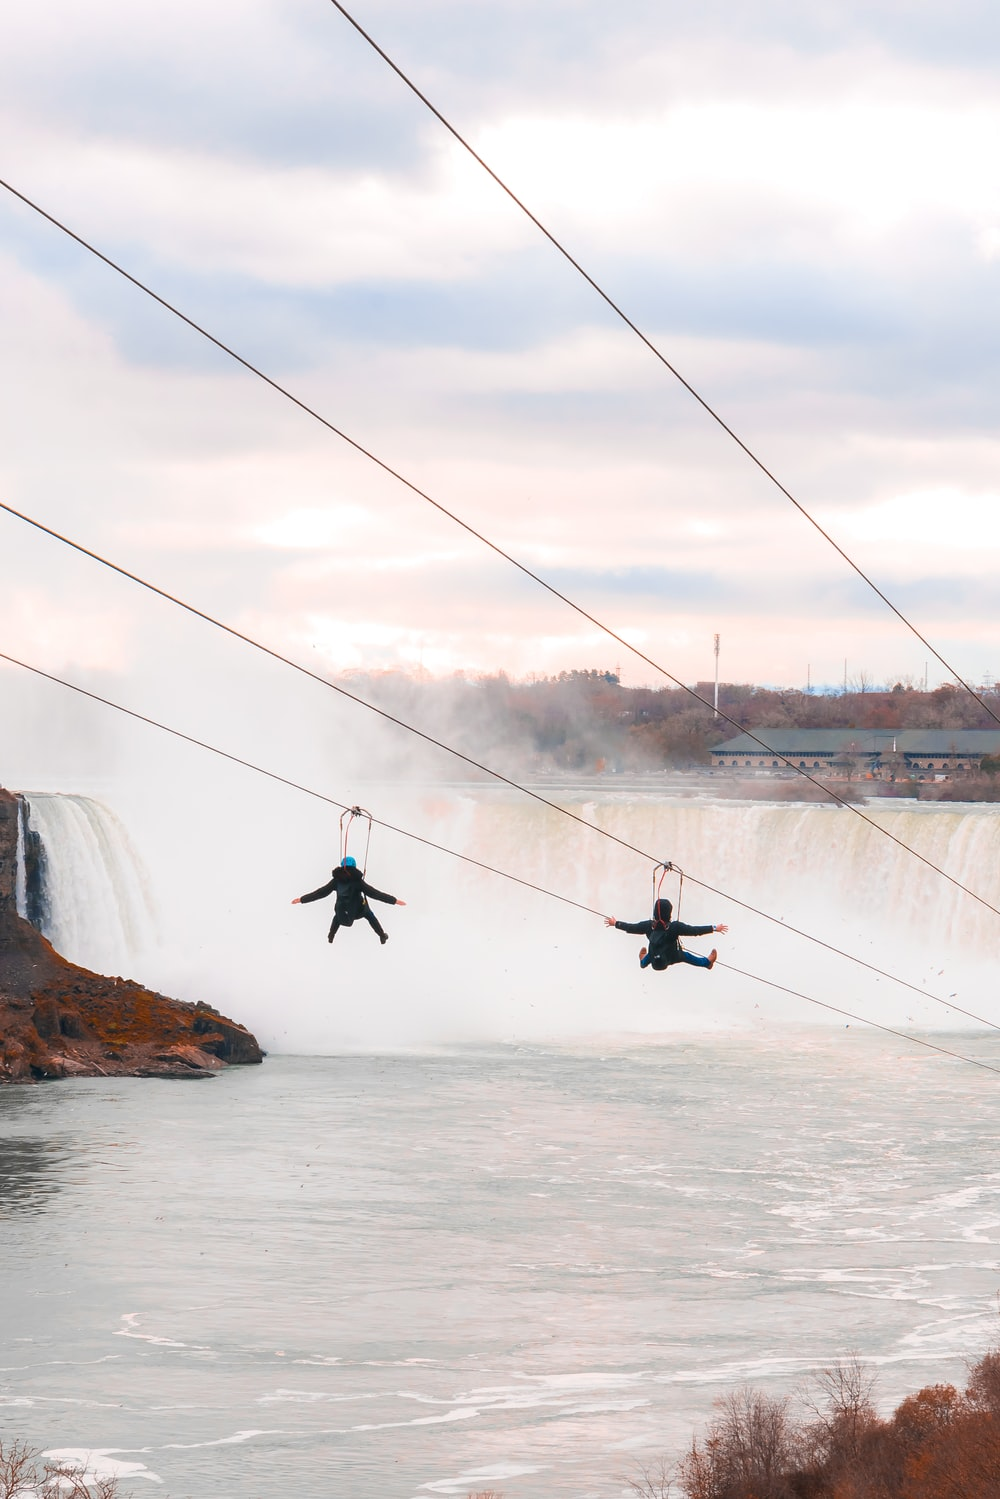 two person riding on the rides over body of water